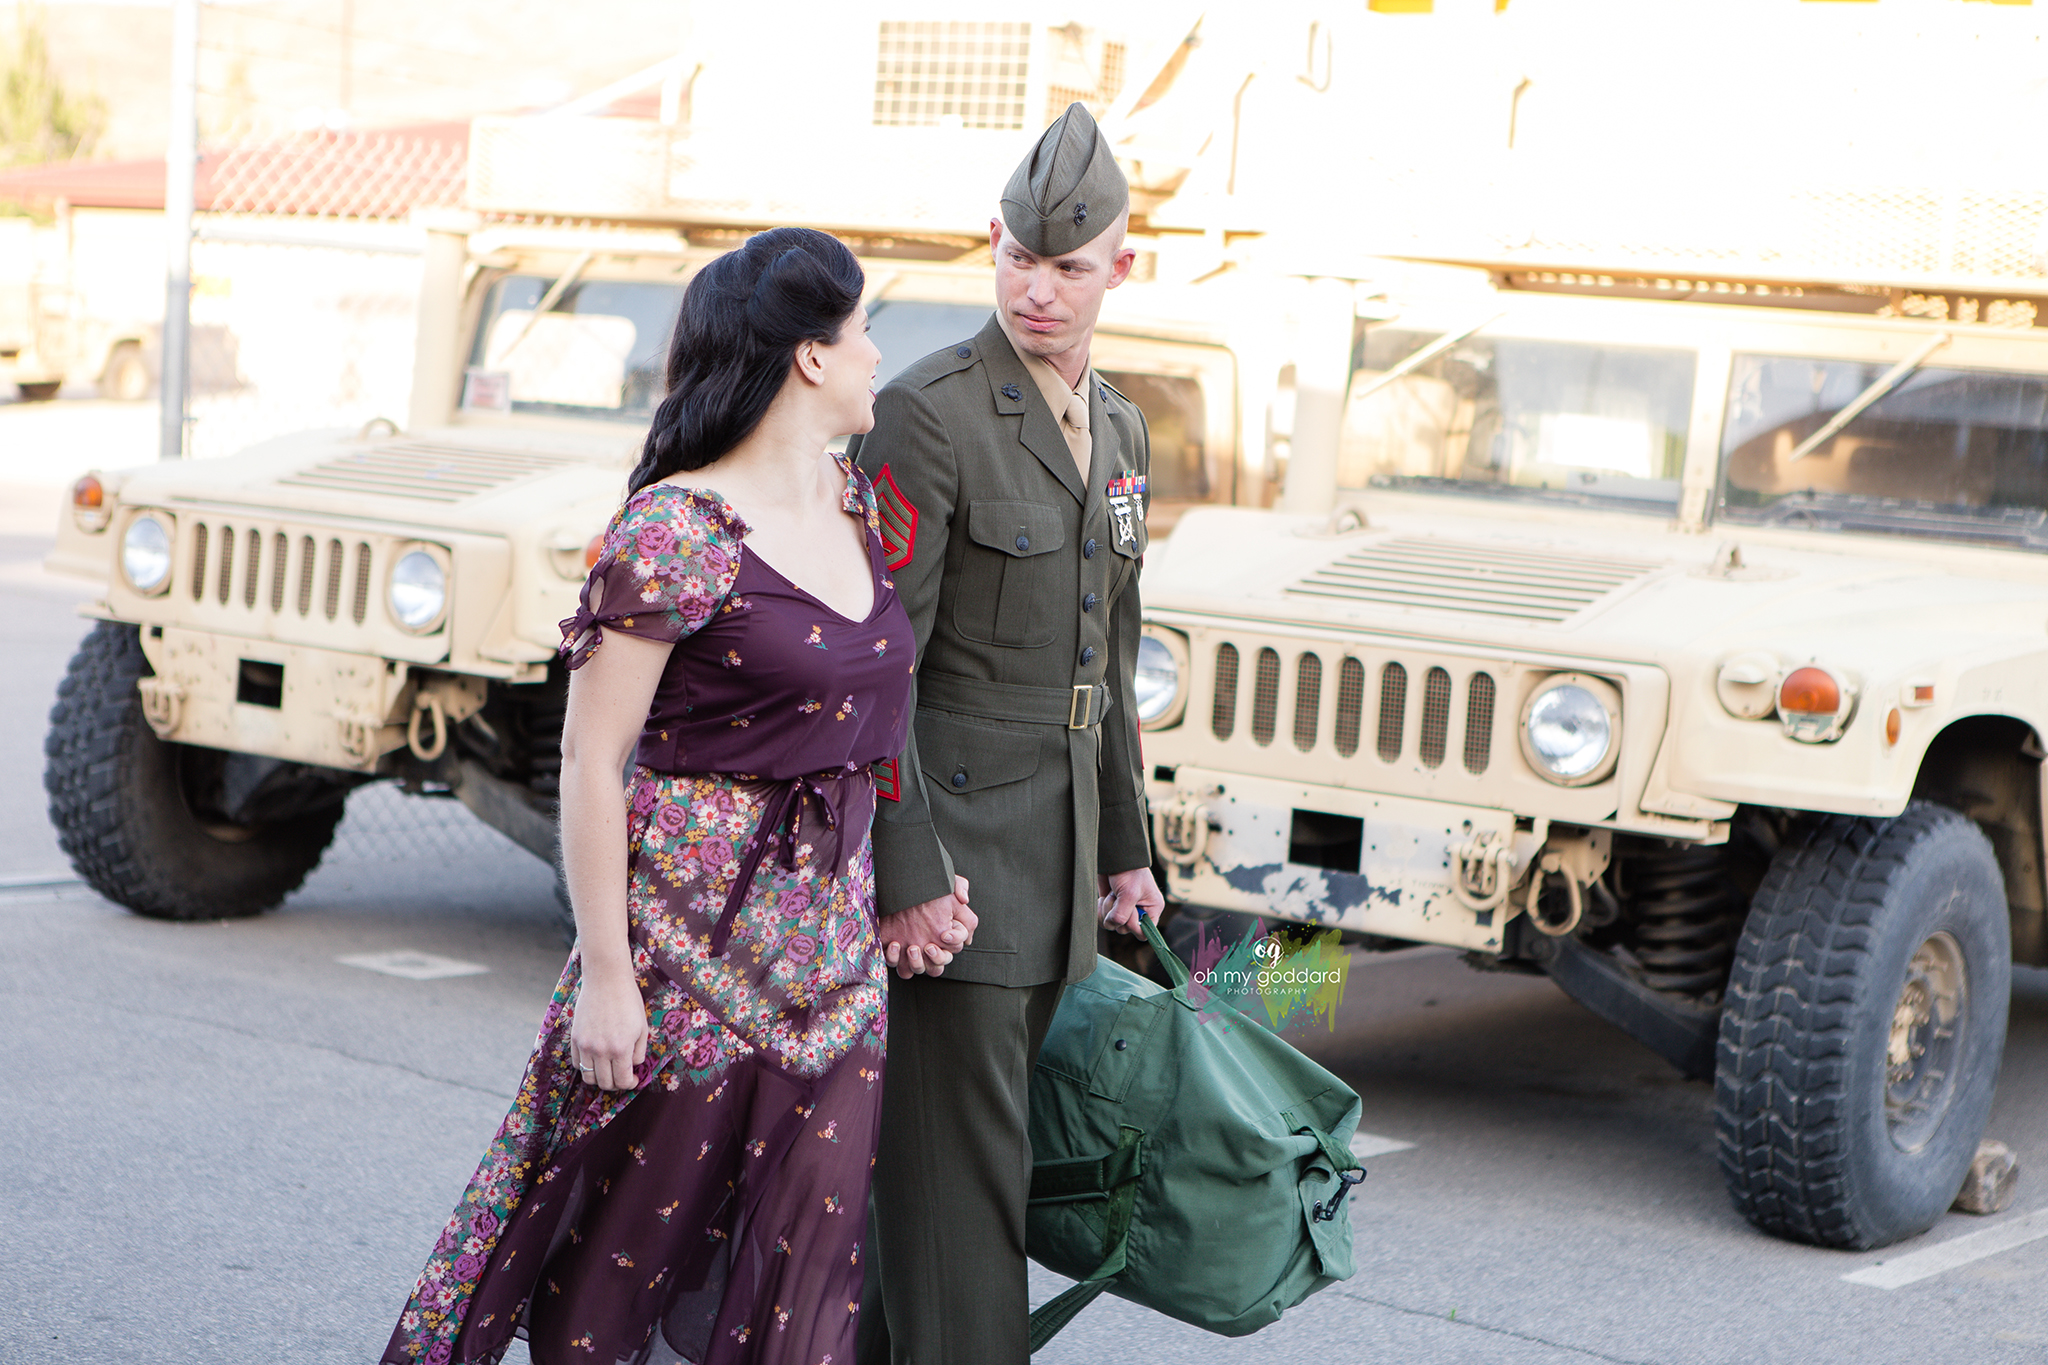 1940s Vitage Military Pregnancy Announcement Photoshoot by Oh My Goddard Photography - San Diego Photographer